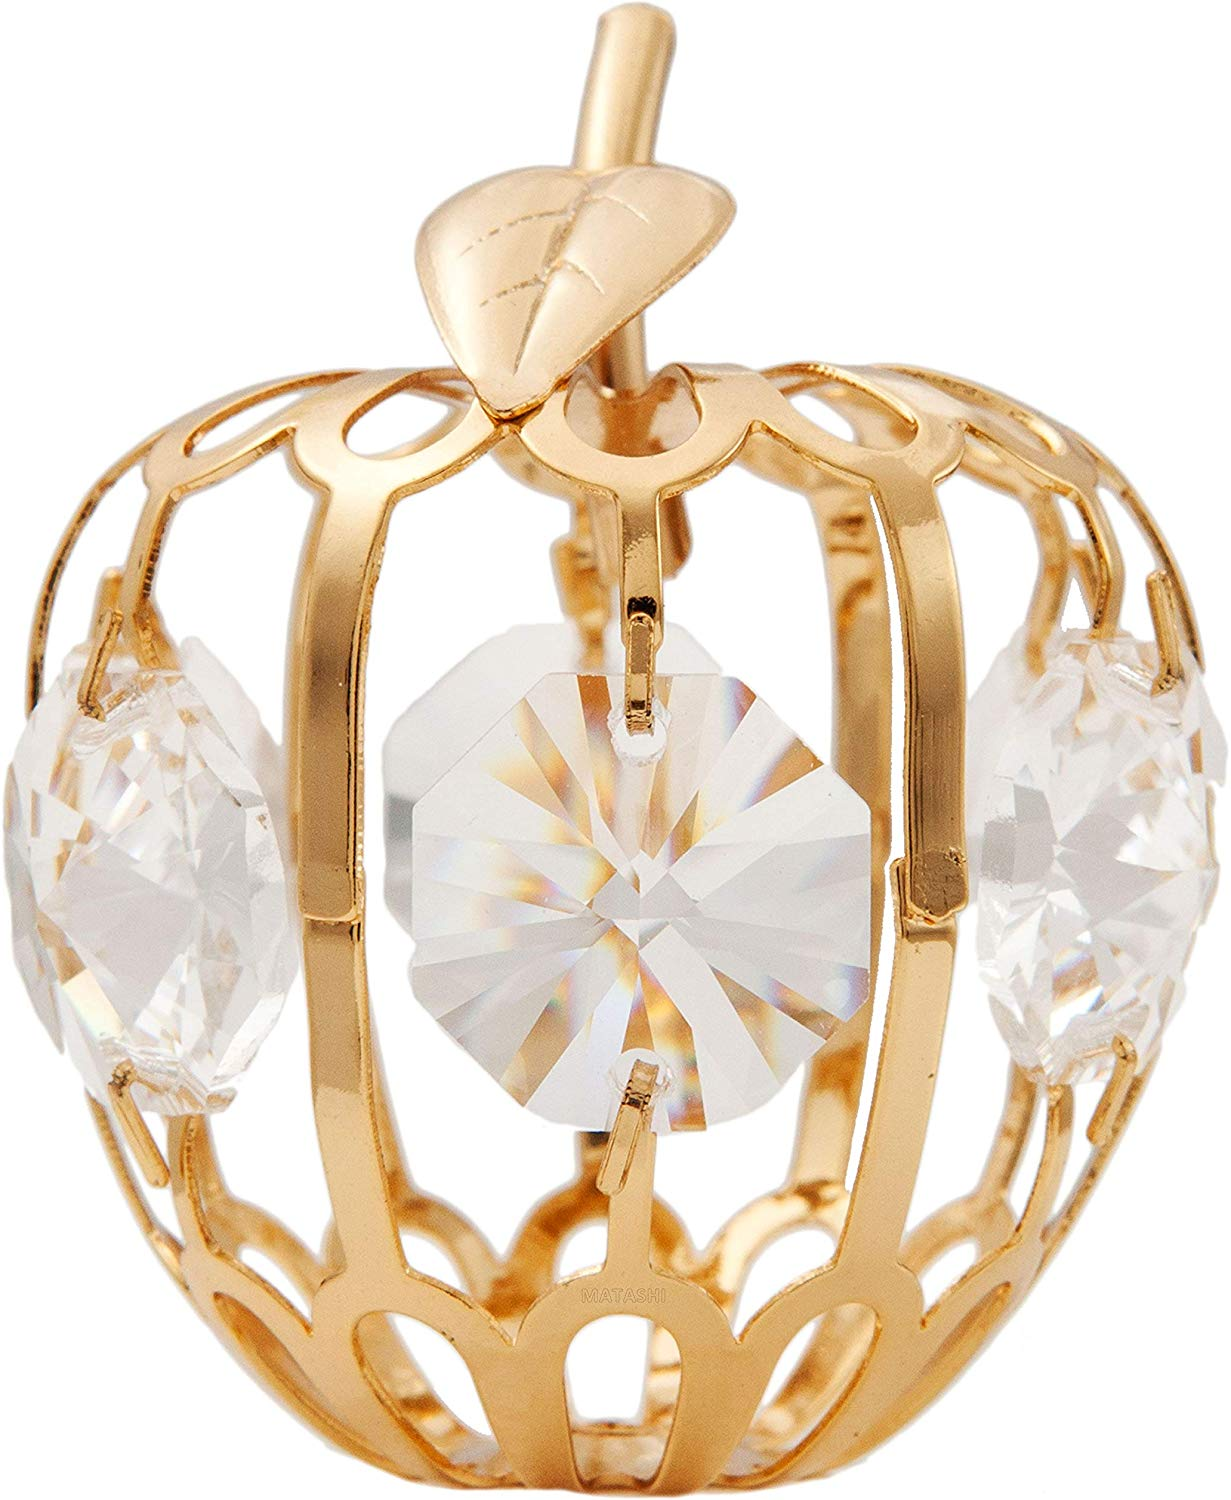 Matashi 24K Gold Plated Crystal Studded Mini Apple Ornament with Clear Crystals Home Decor Office Desk Showpiece Tabletop Centerpiece - Gift for Mother's Day Wedding Anniversary Christmas Birthday